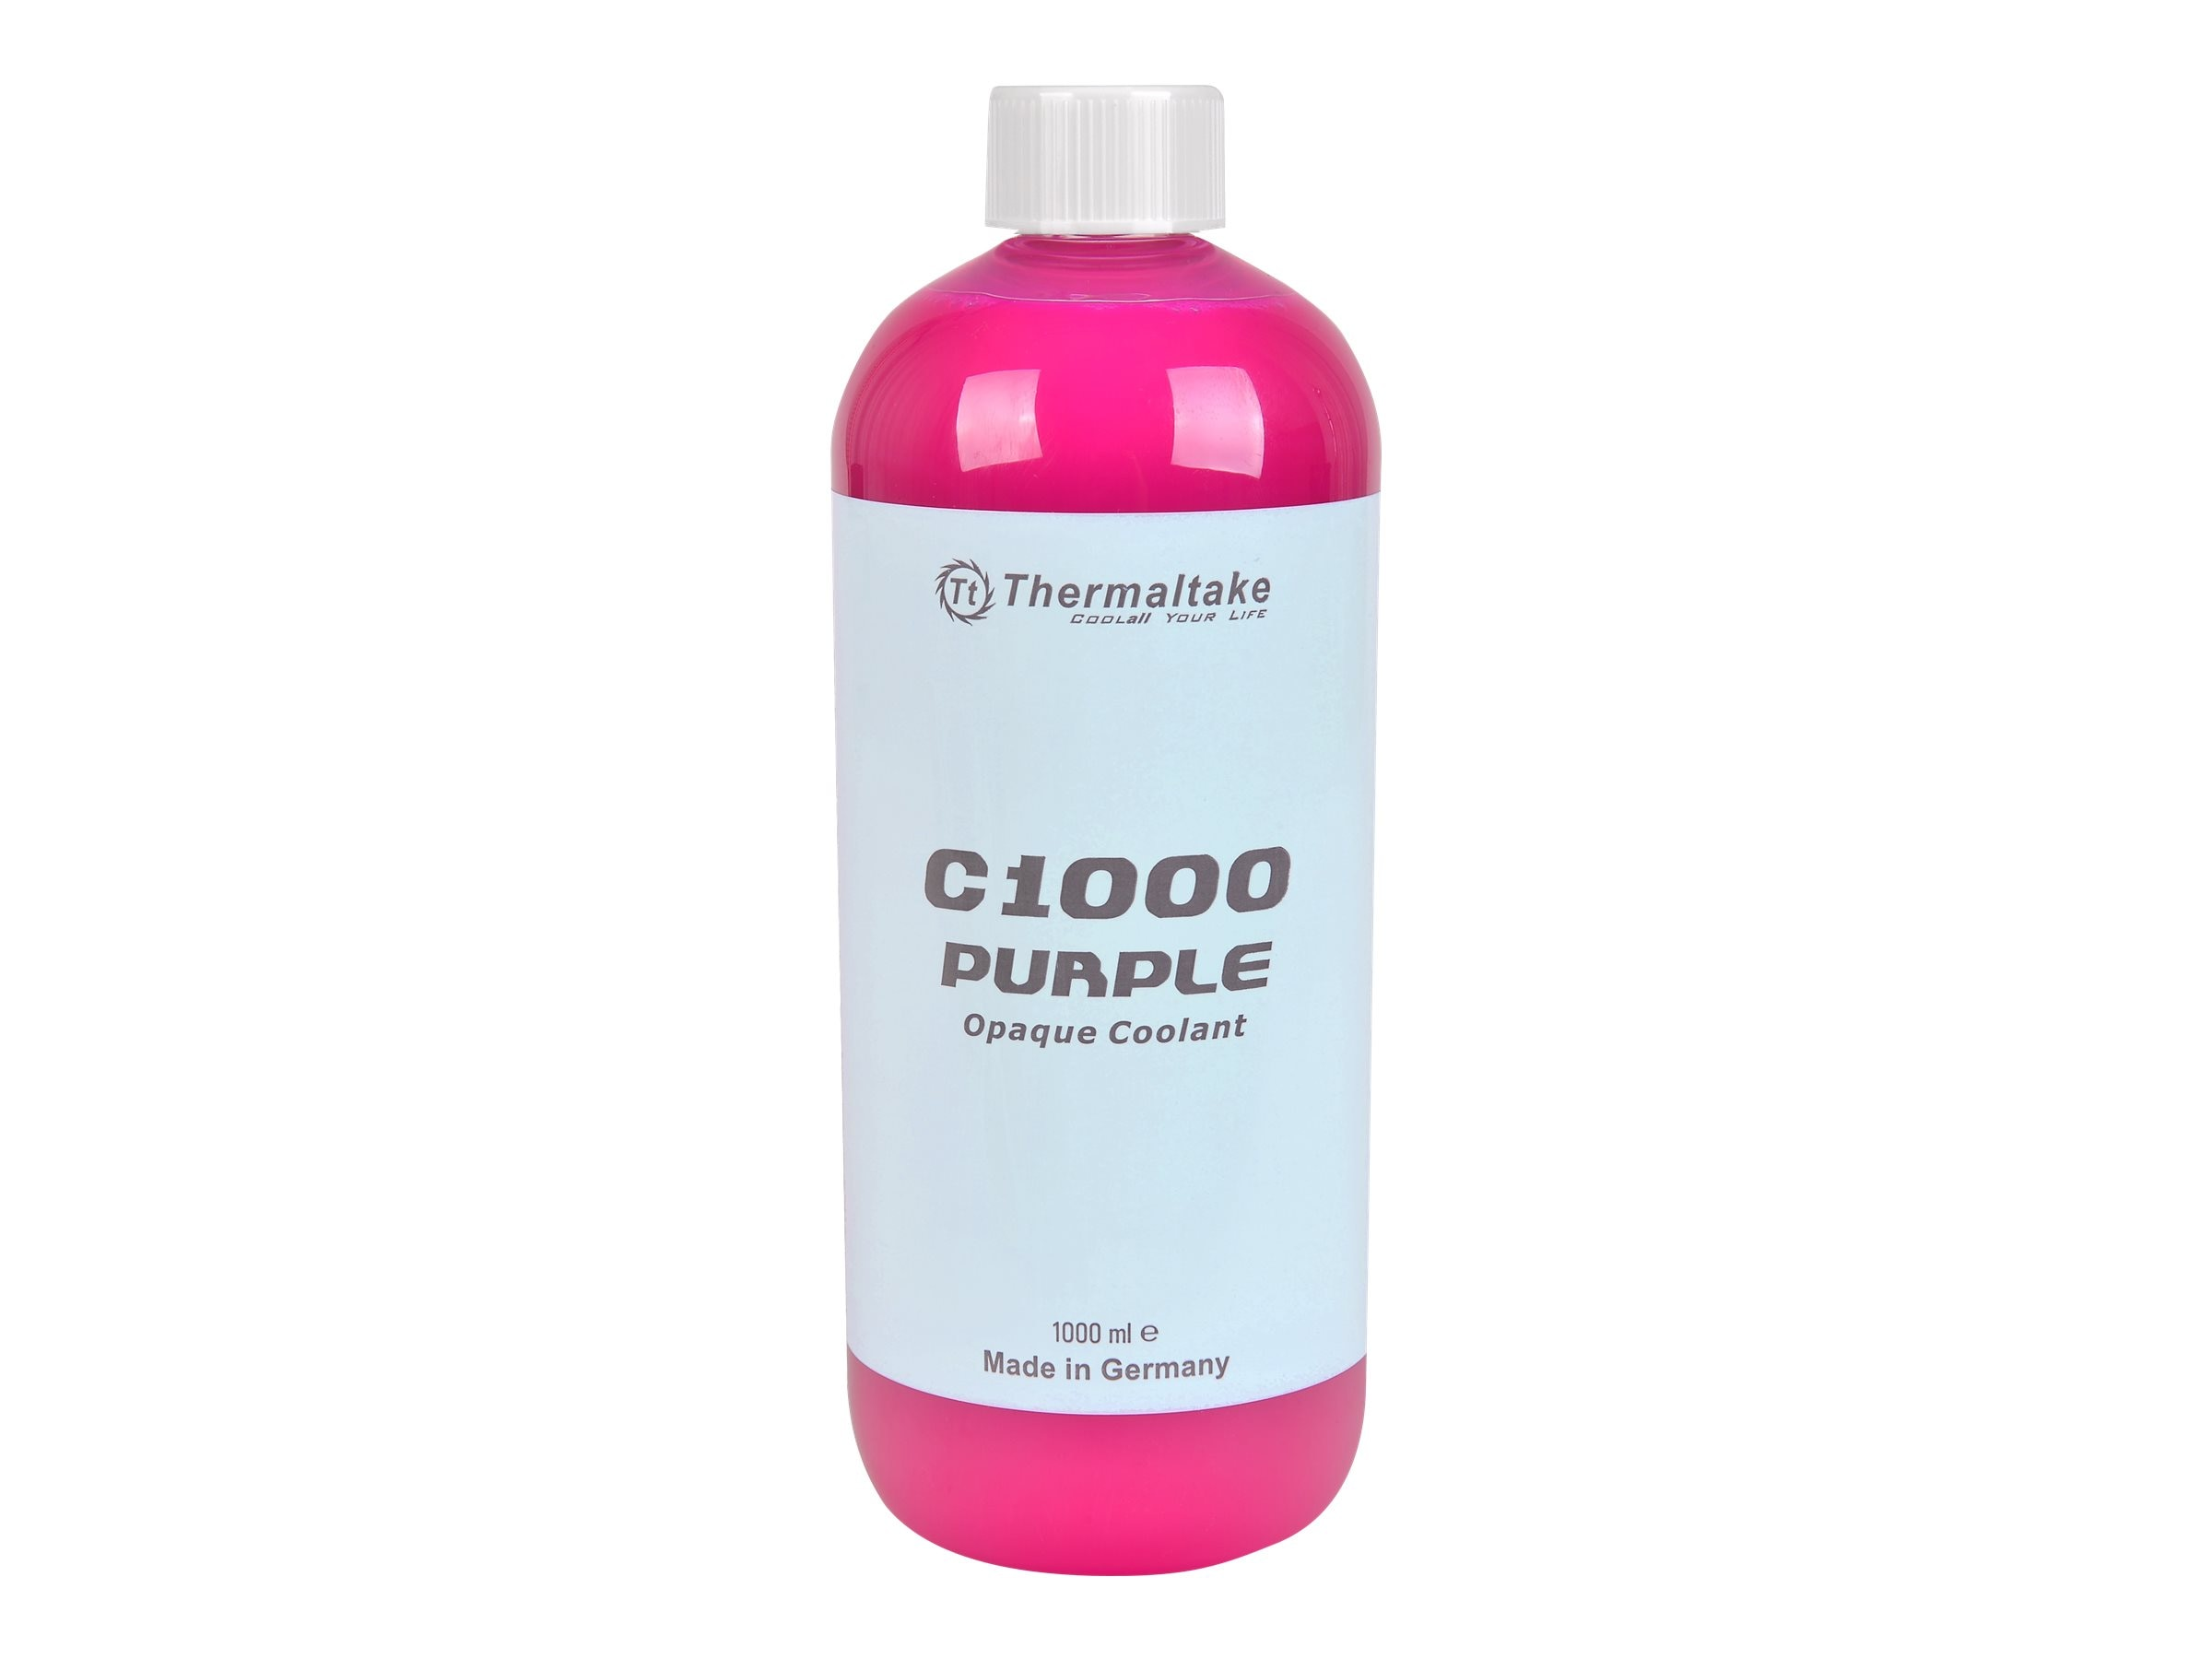 Thermaltake C1000 Opaque Liquid Coolant, Purple